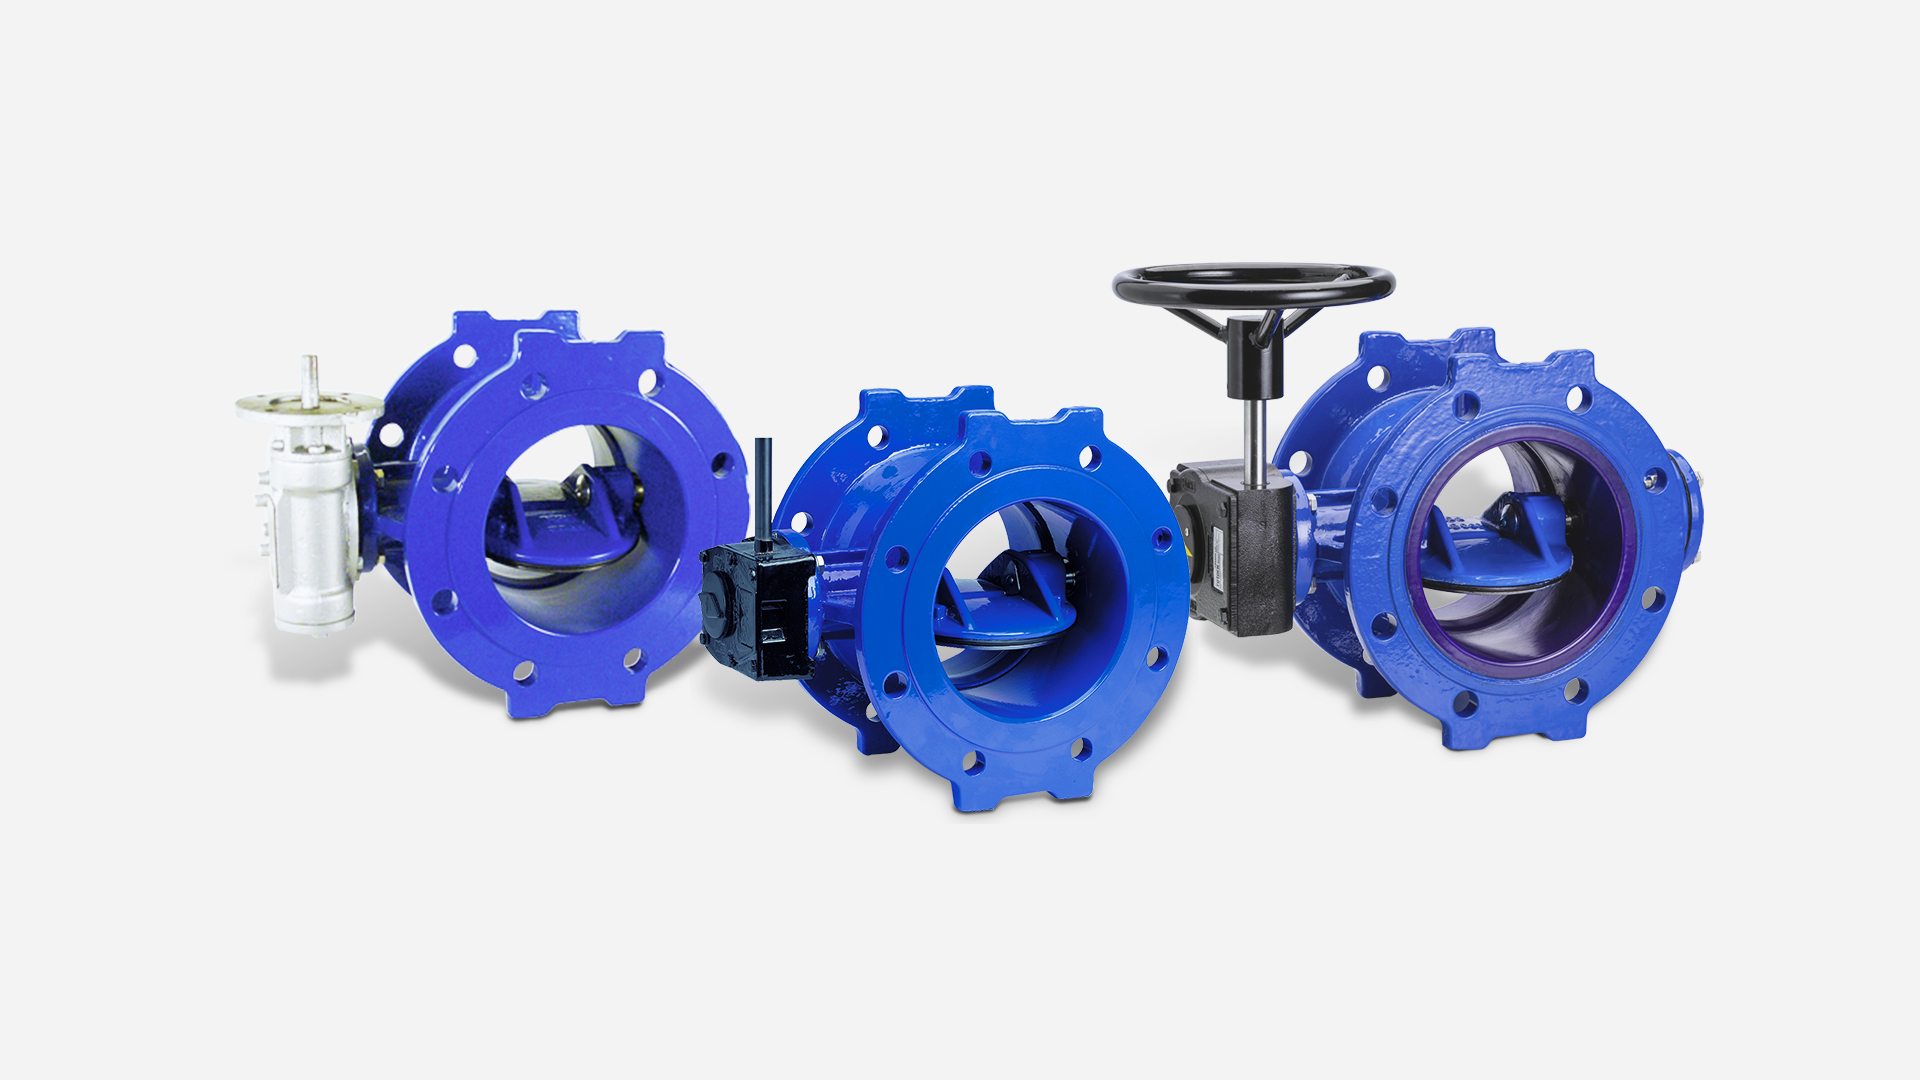 Our range has been extended so it now comprises valves in DN150-2800 with internal epoxy coating and valves in DN150-800 with internal enamel coating